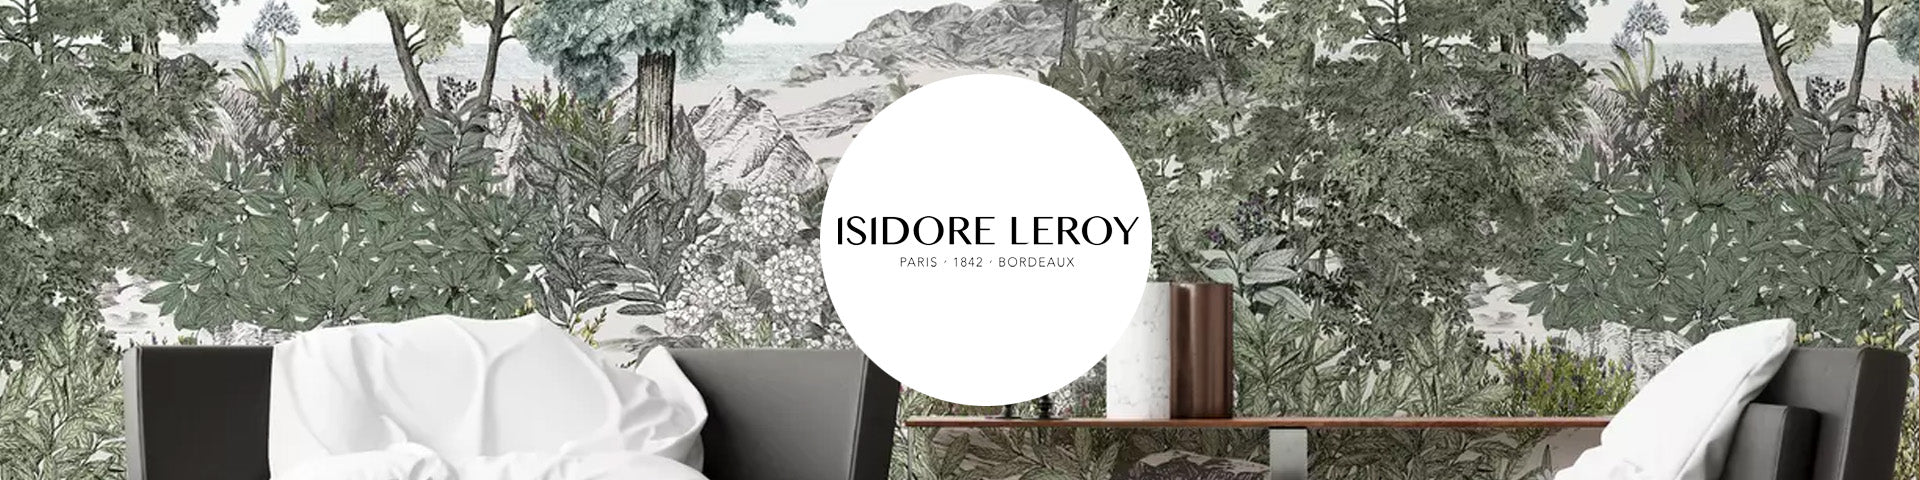 Isidore Leroy wallpaper behang